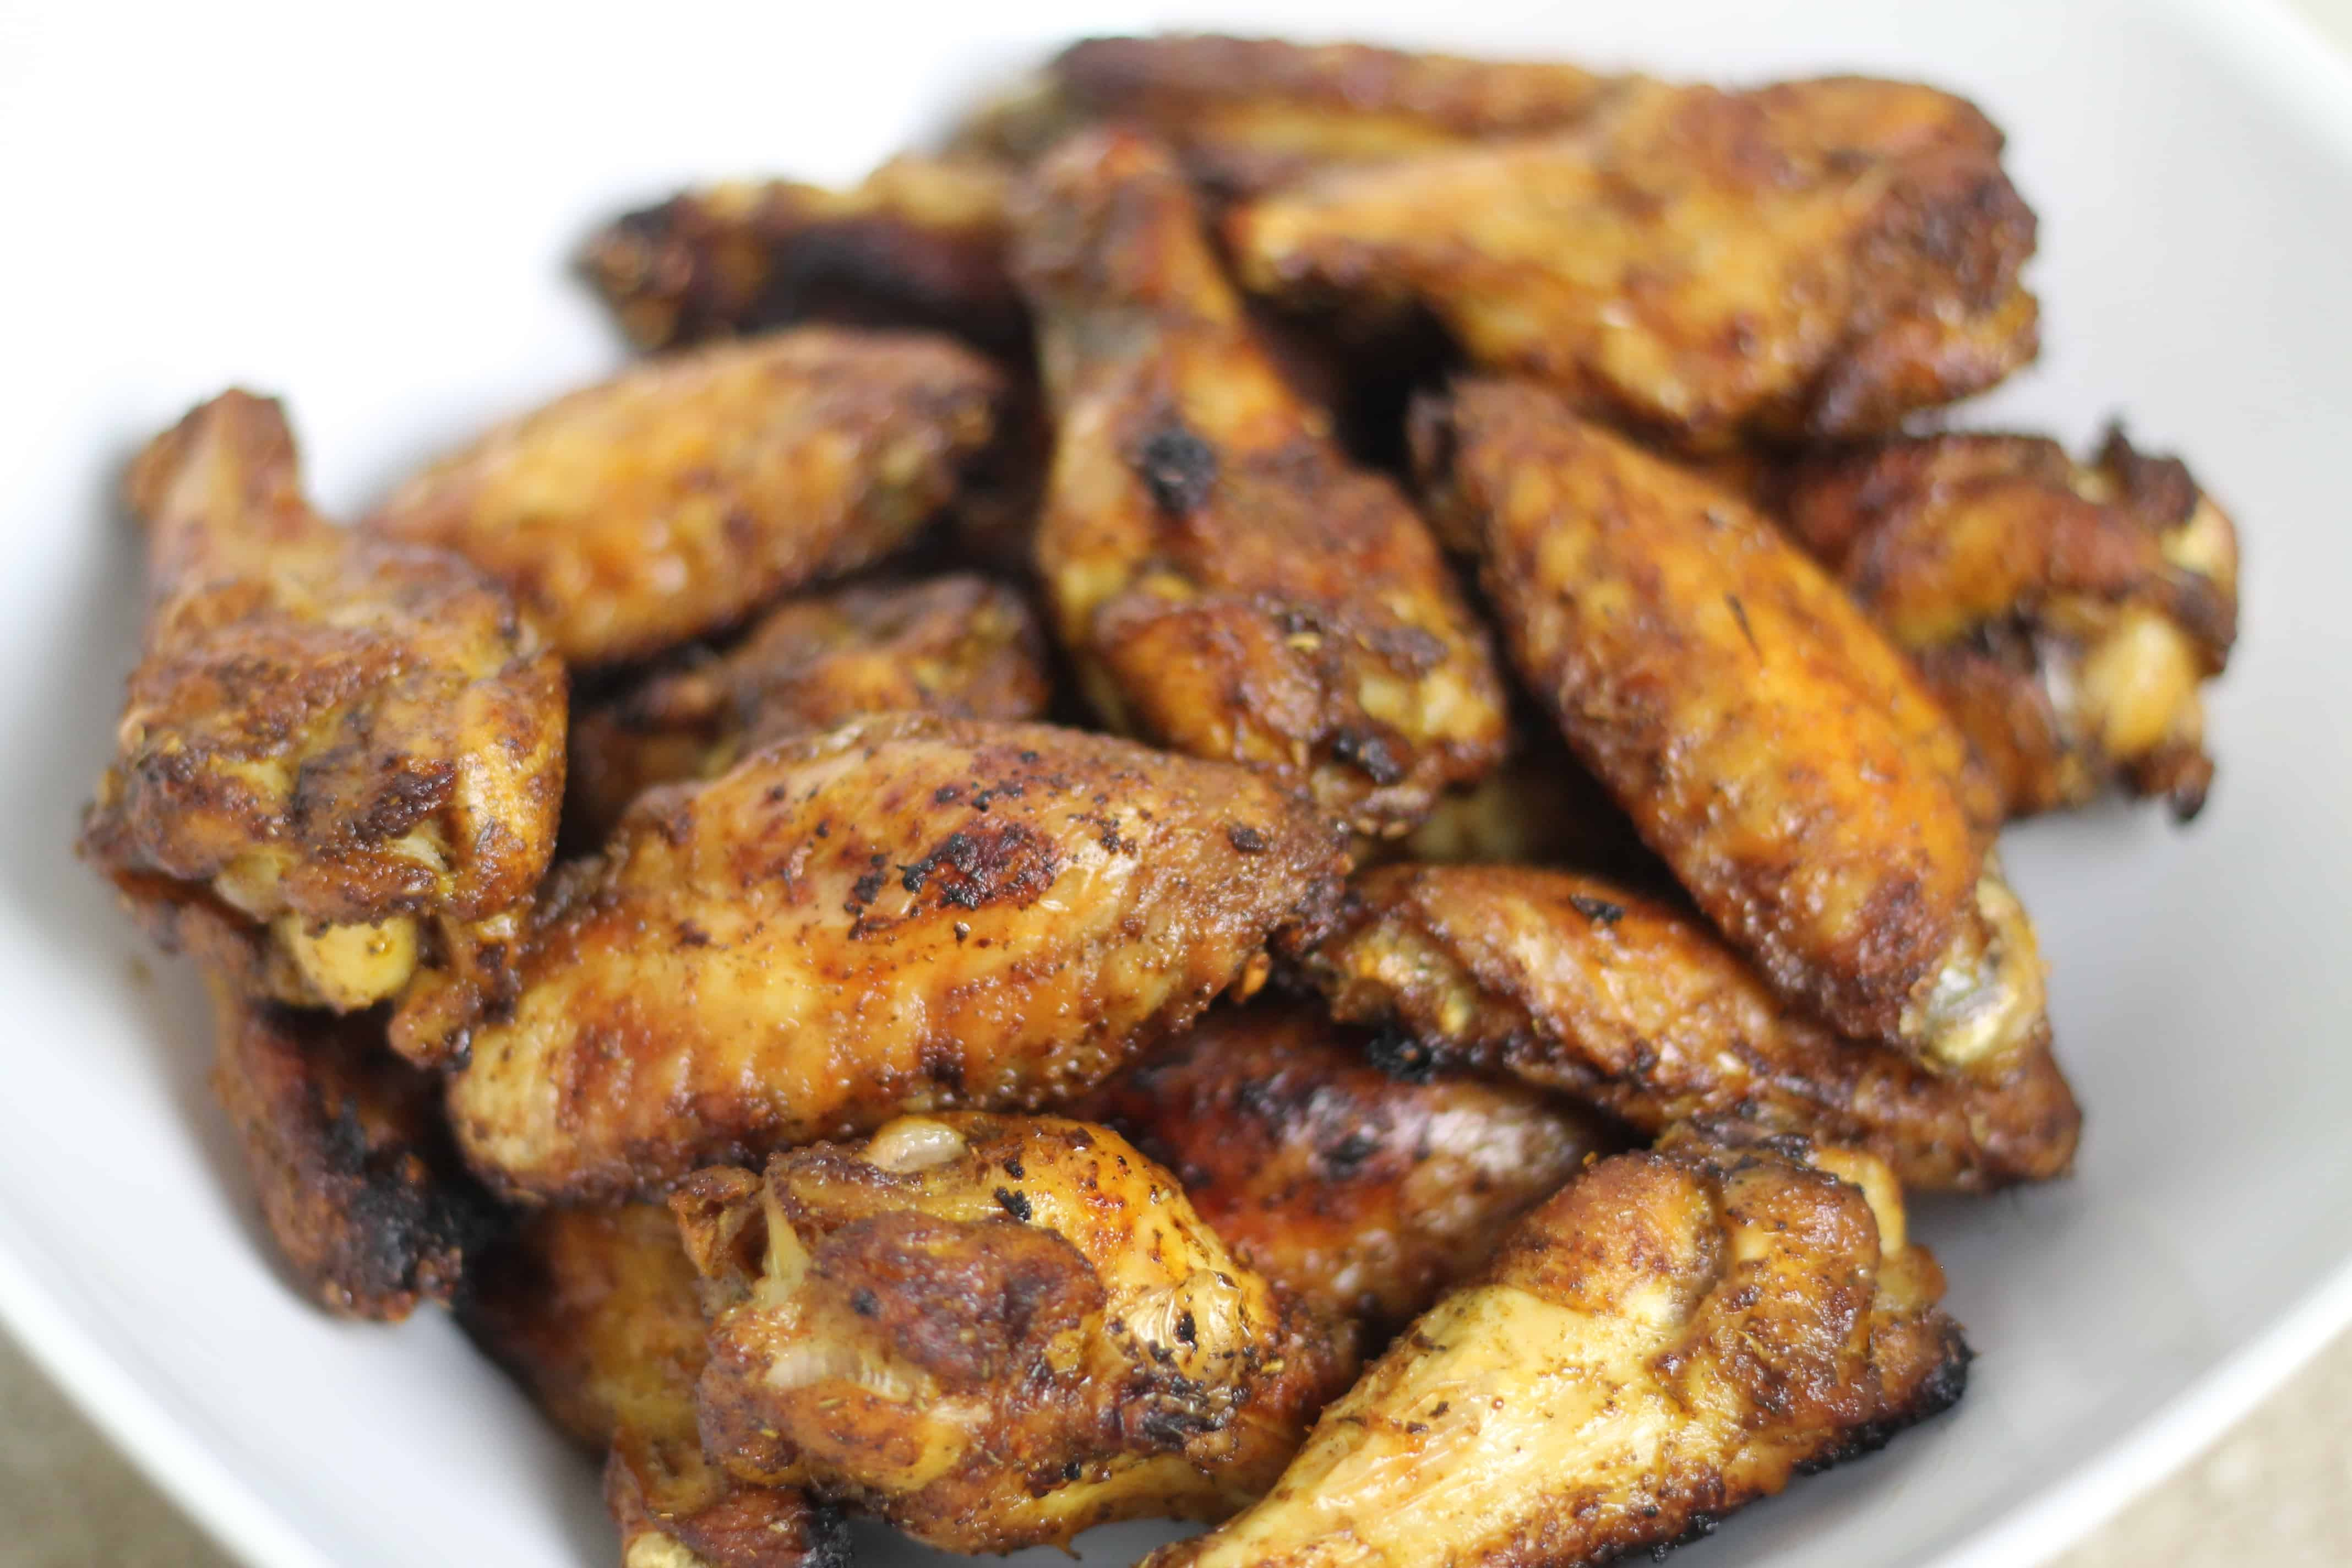 Dry rub spiced chicken wings